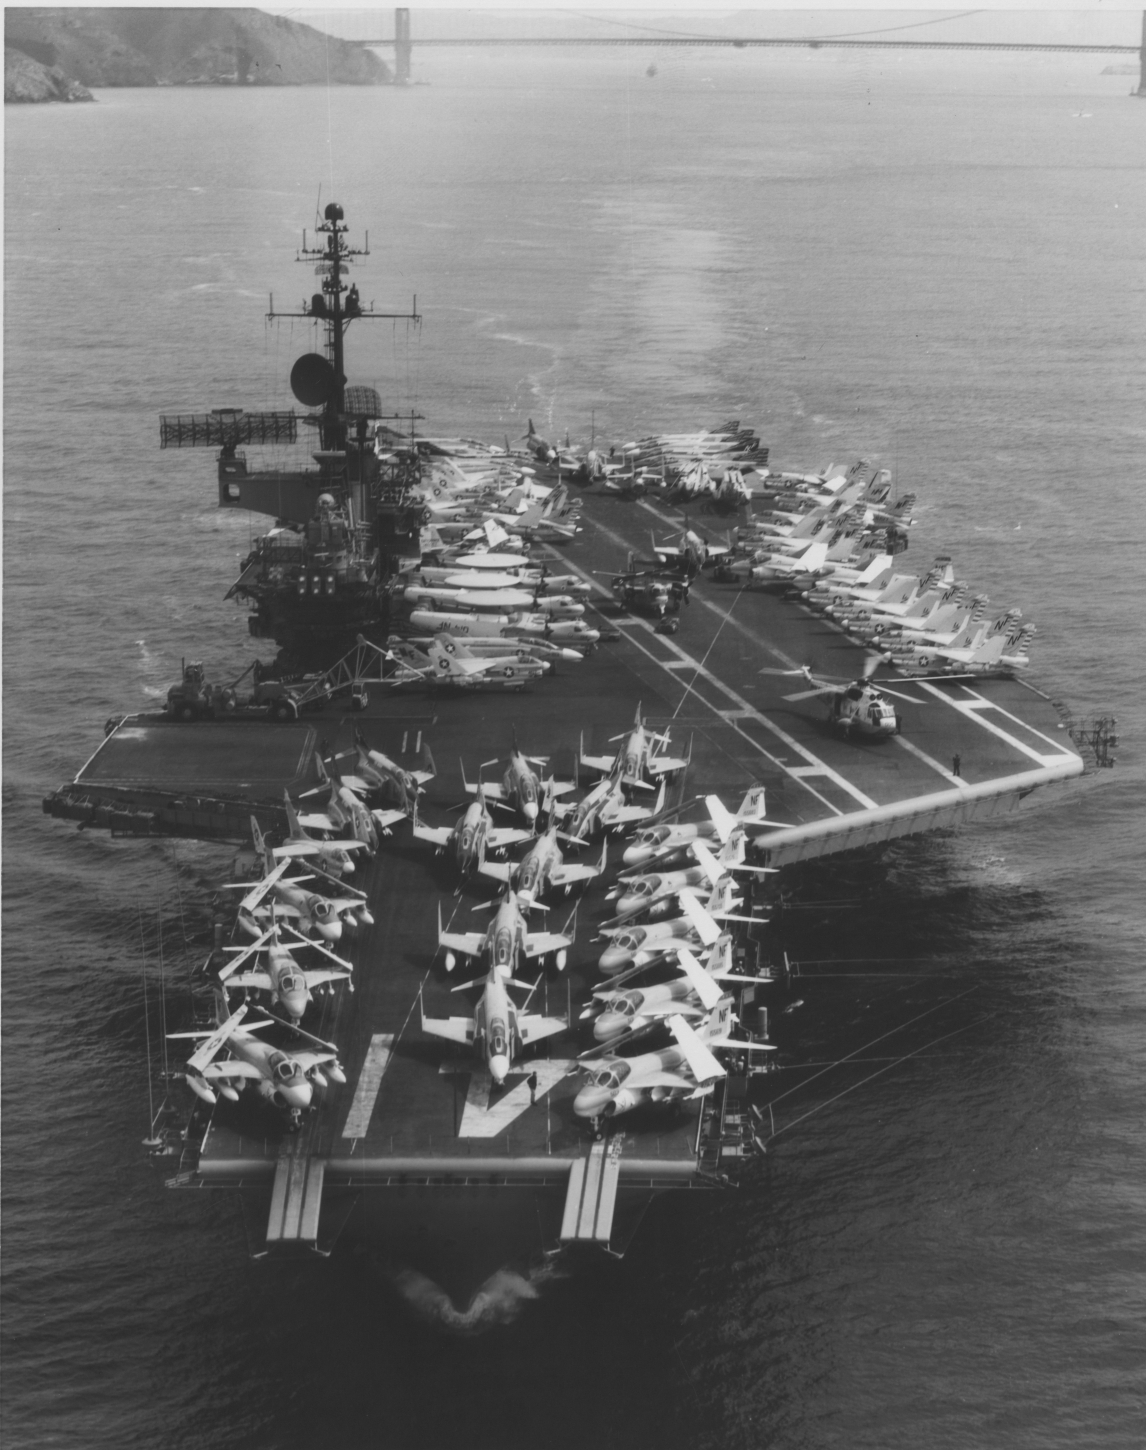 Aircraft carrier: F-4 Phantom, A-7 Corsair II, A-6 Intruder, and others.